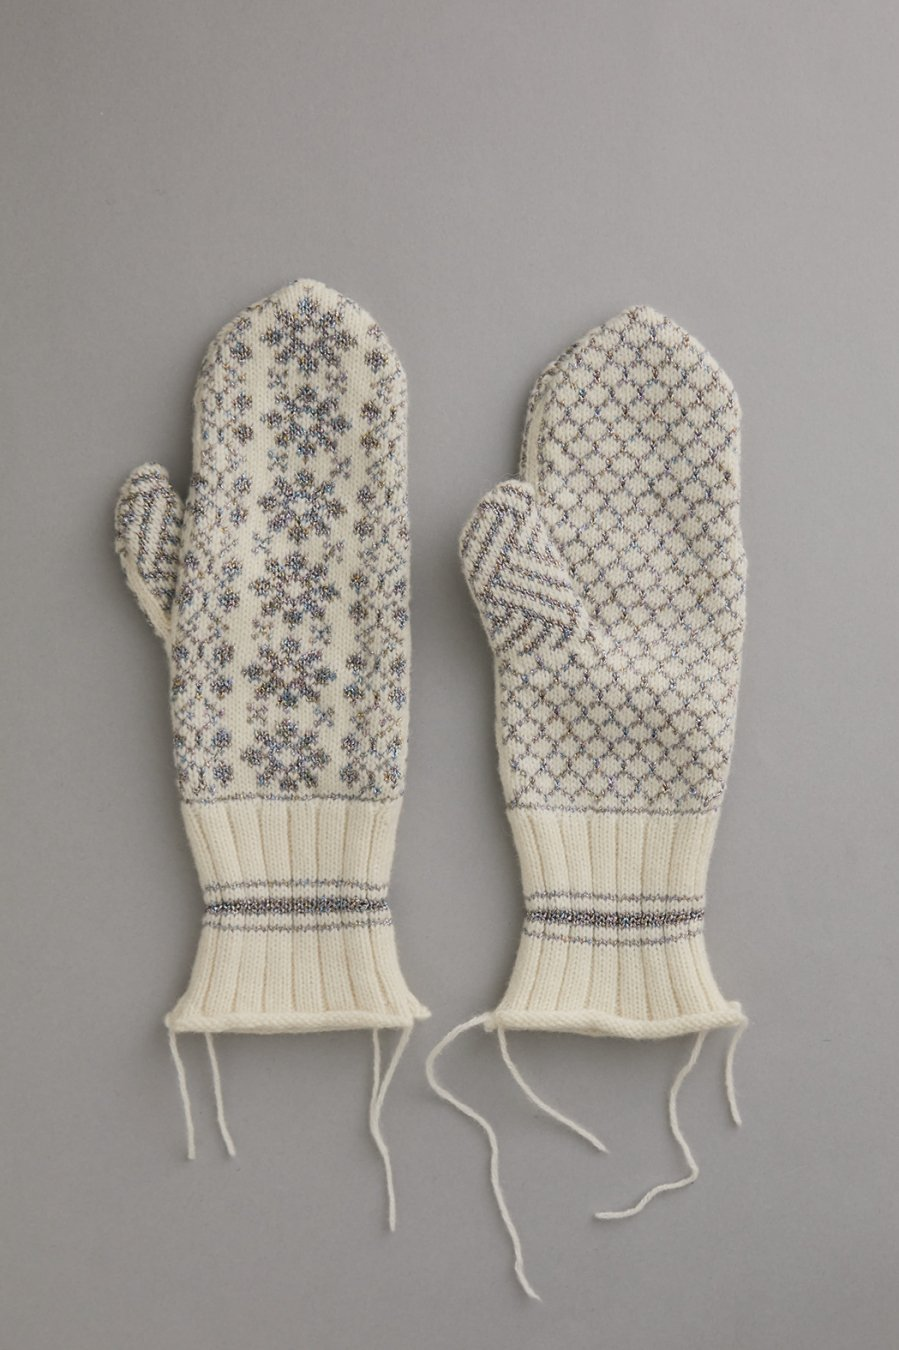 MASU  NORDIC MITTENS(WHITE)<img class='new_mark_img2' src='https://img.shop-pro.jp/img/new/icons15.gif' style='border:none;display:inline;margin:0px;padding:0px;width:auto;' />